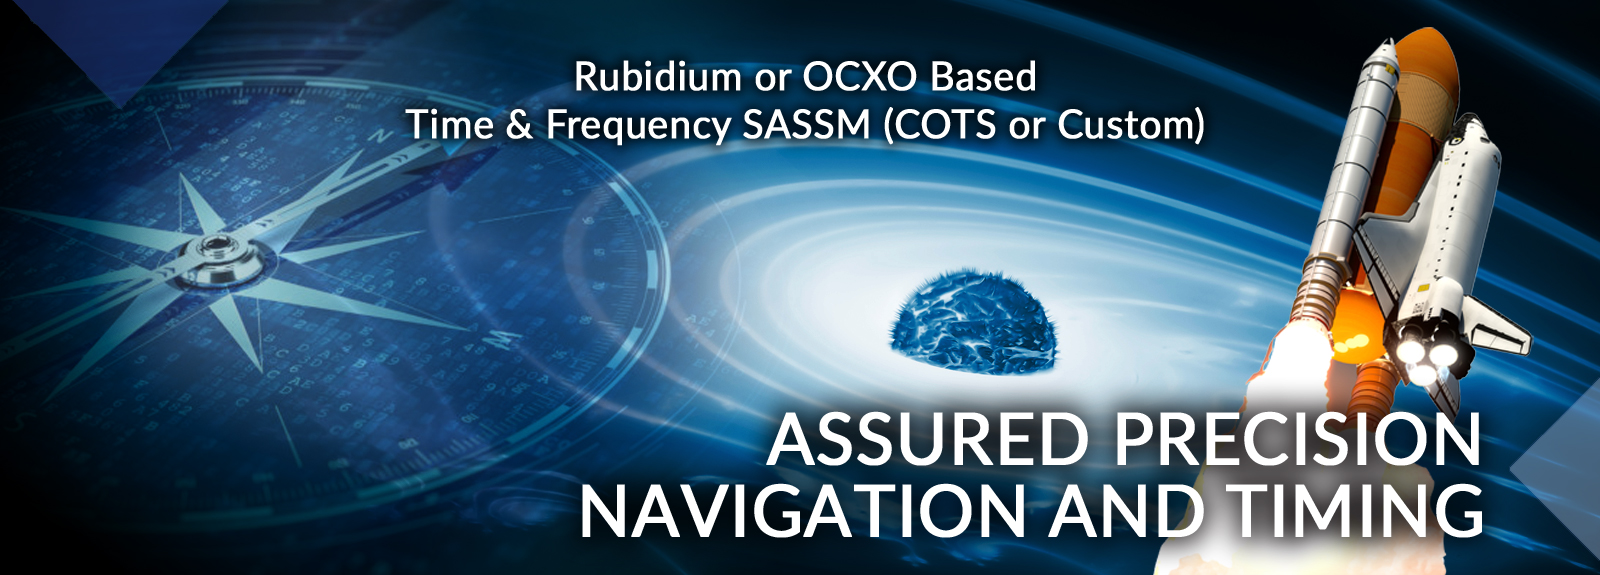 assured precision navigation timing